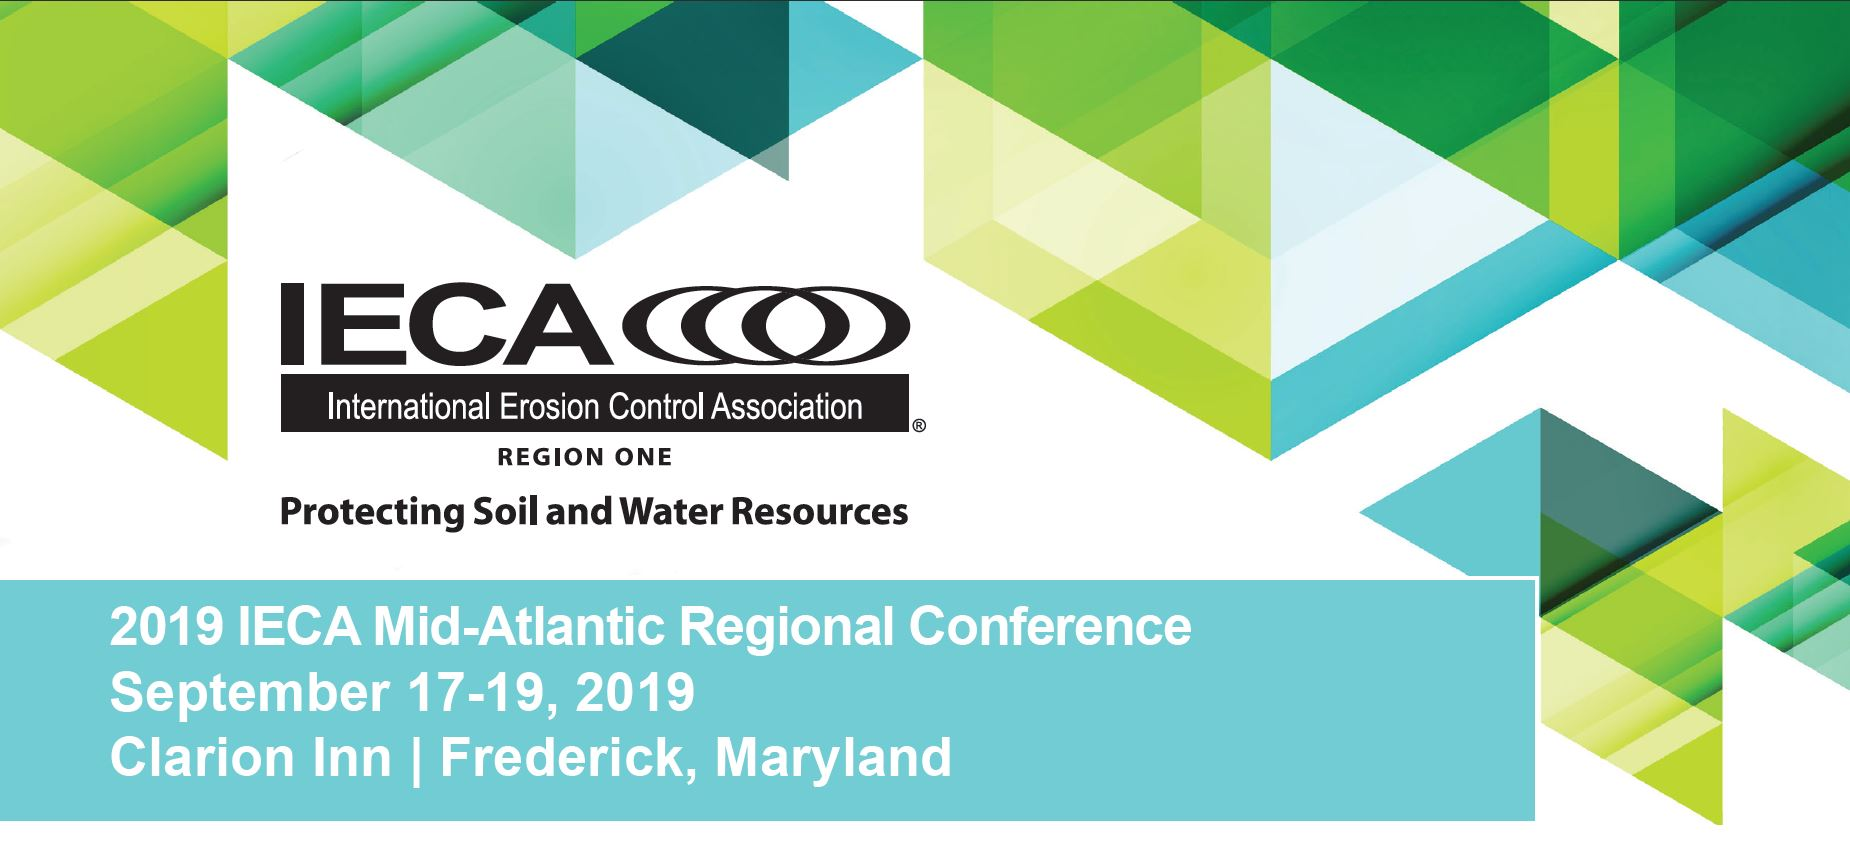 27th Annual Conference Location Announced!